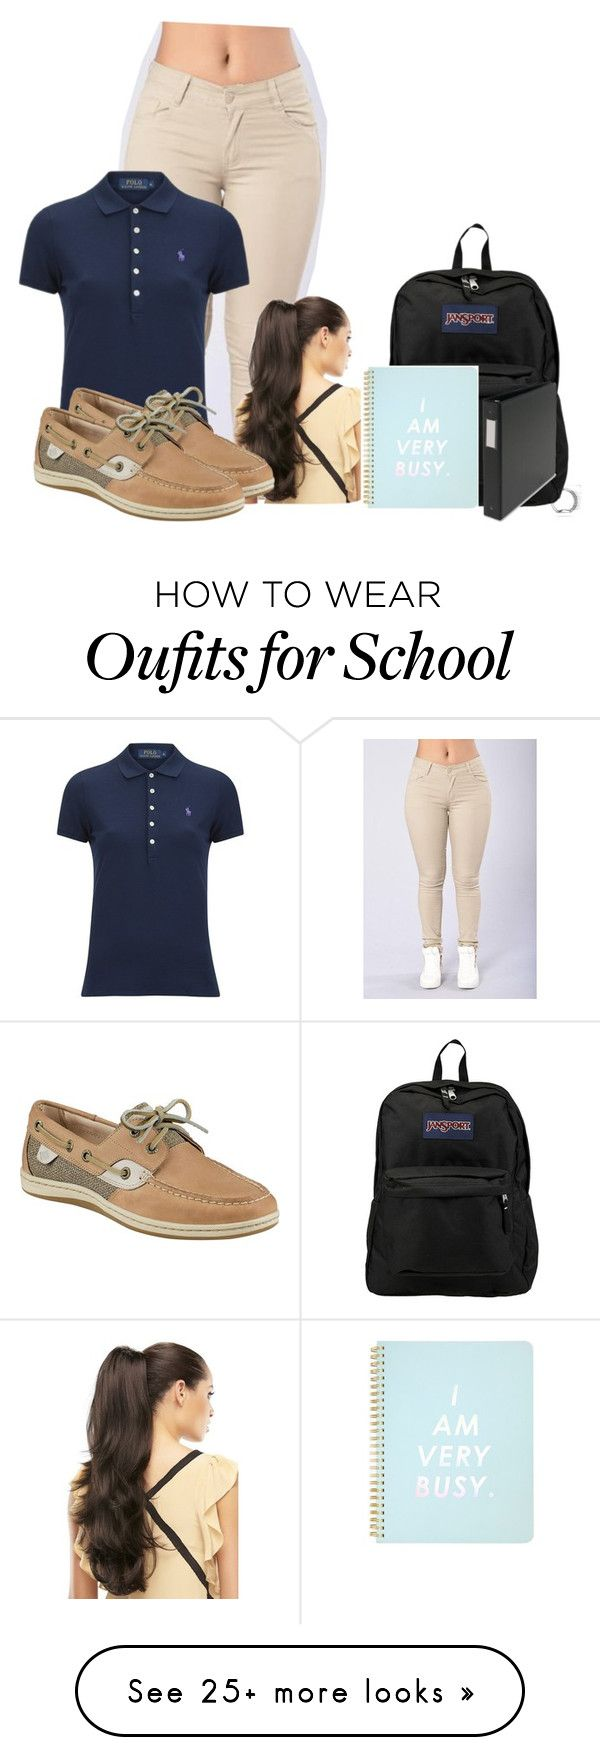 """School uniform"" by asvpkateee on Polyvore featuring Polo Ralph Lauren, JanSport, ban.do and Sperry"